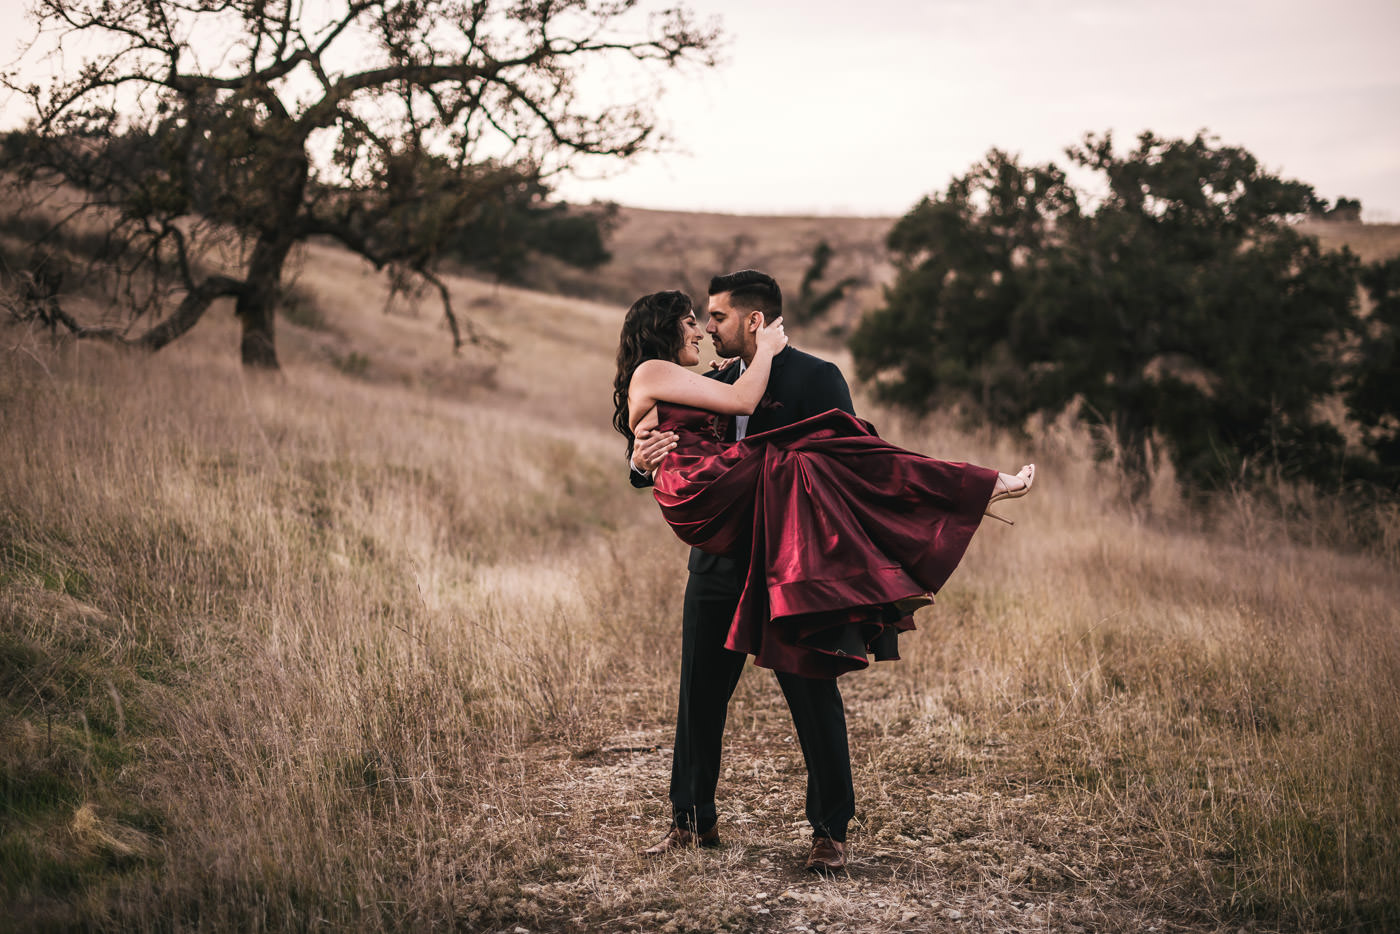 Romantic engagement photography in Malibu California